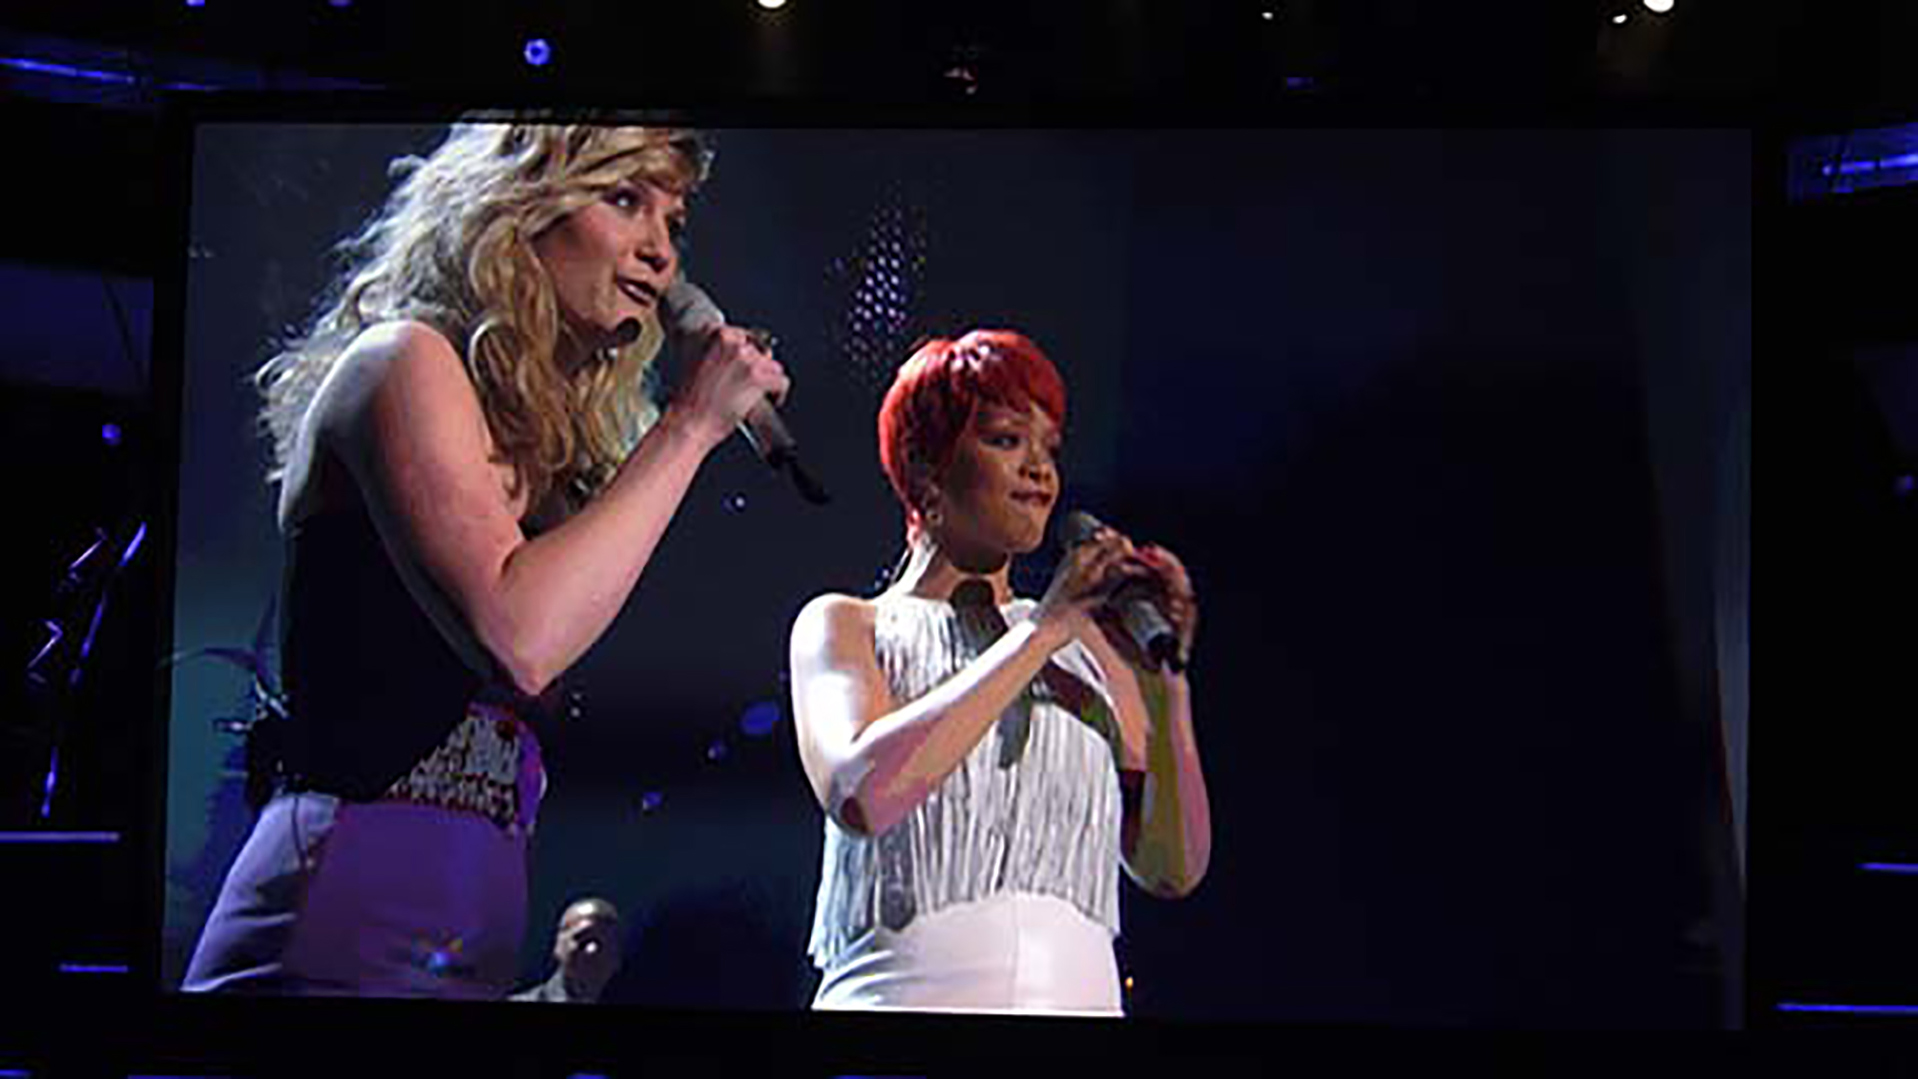 4. Jennifer Nettles and Rihanna perform